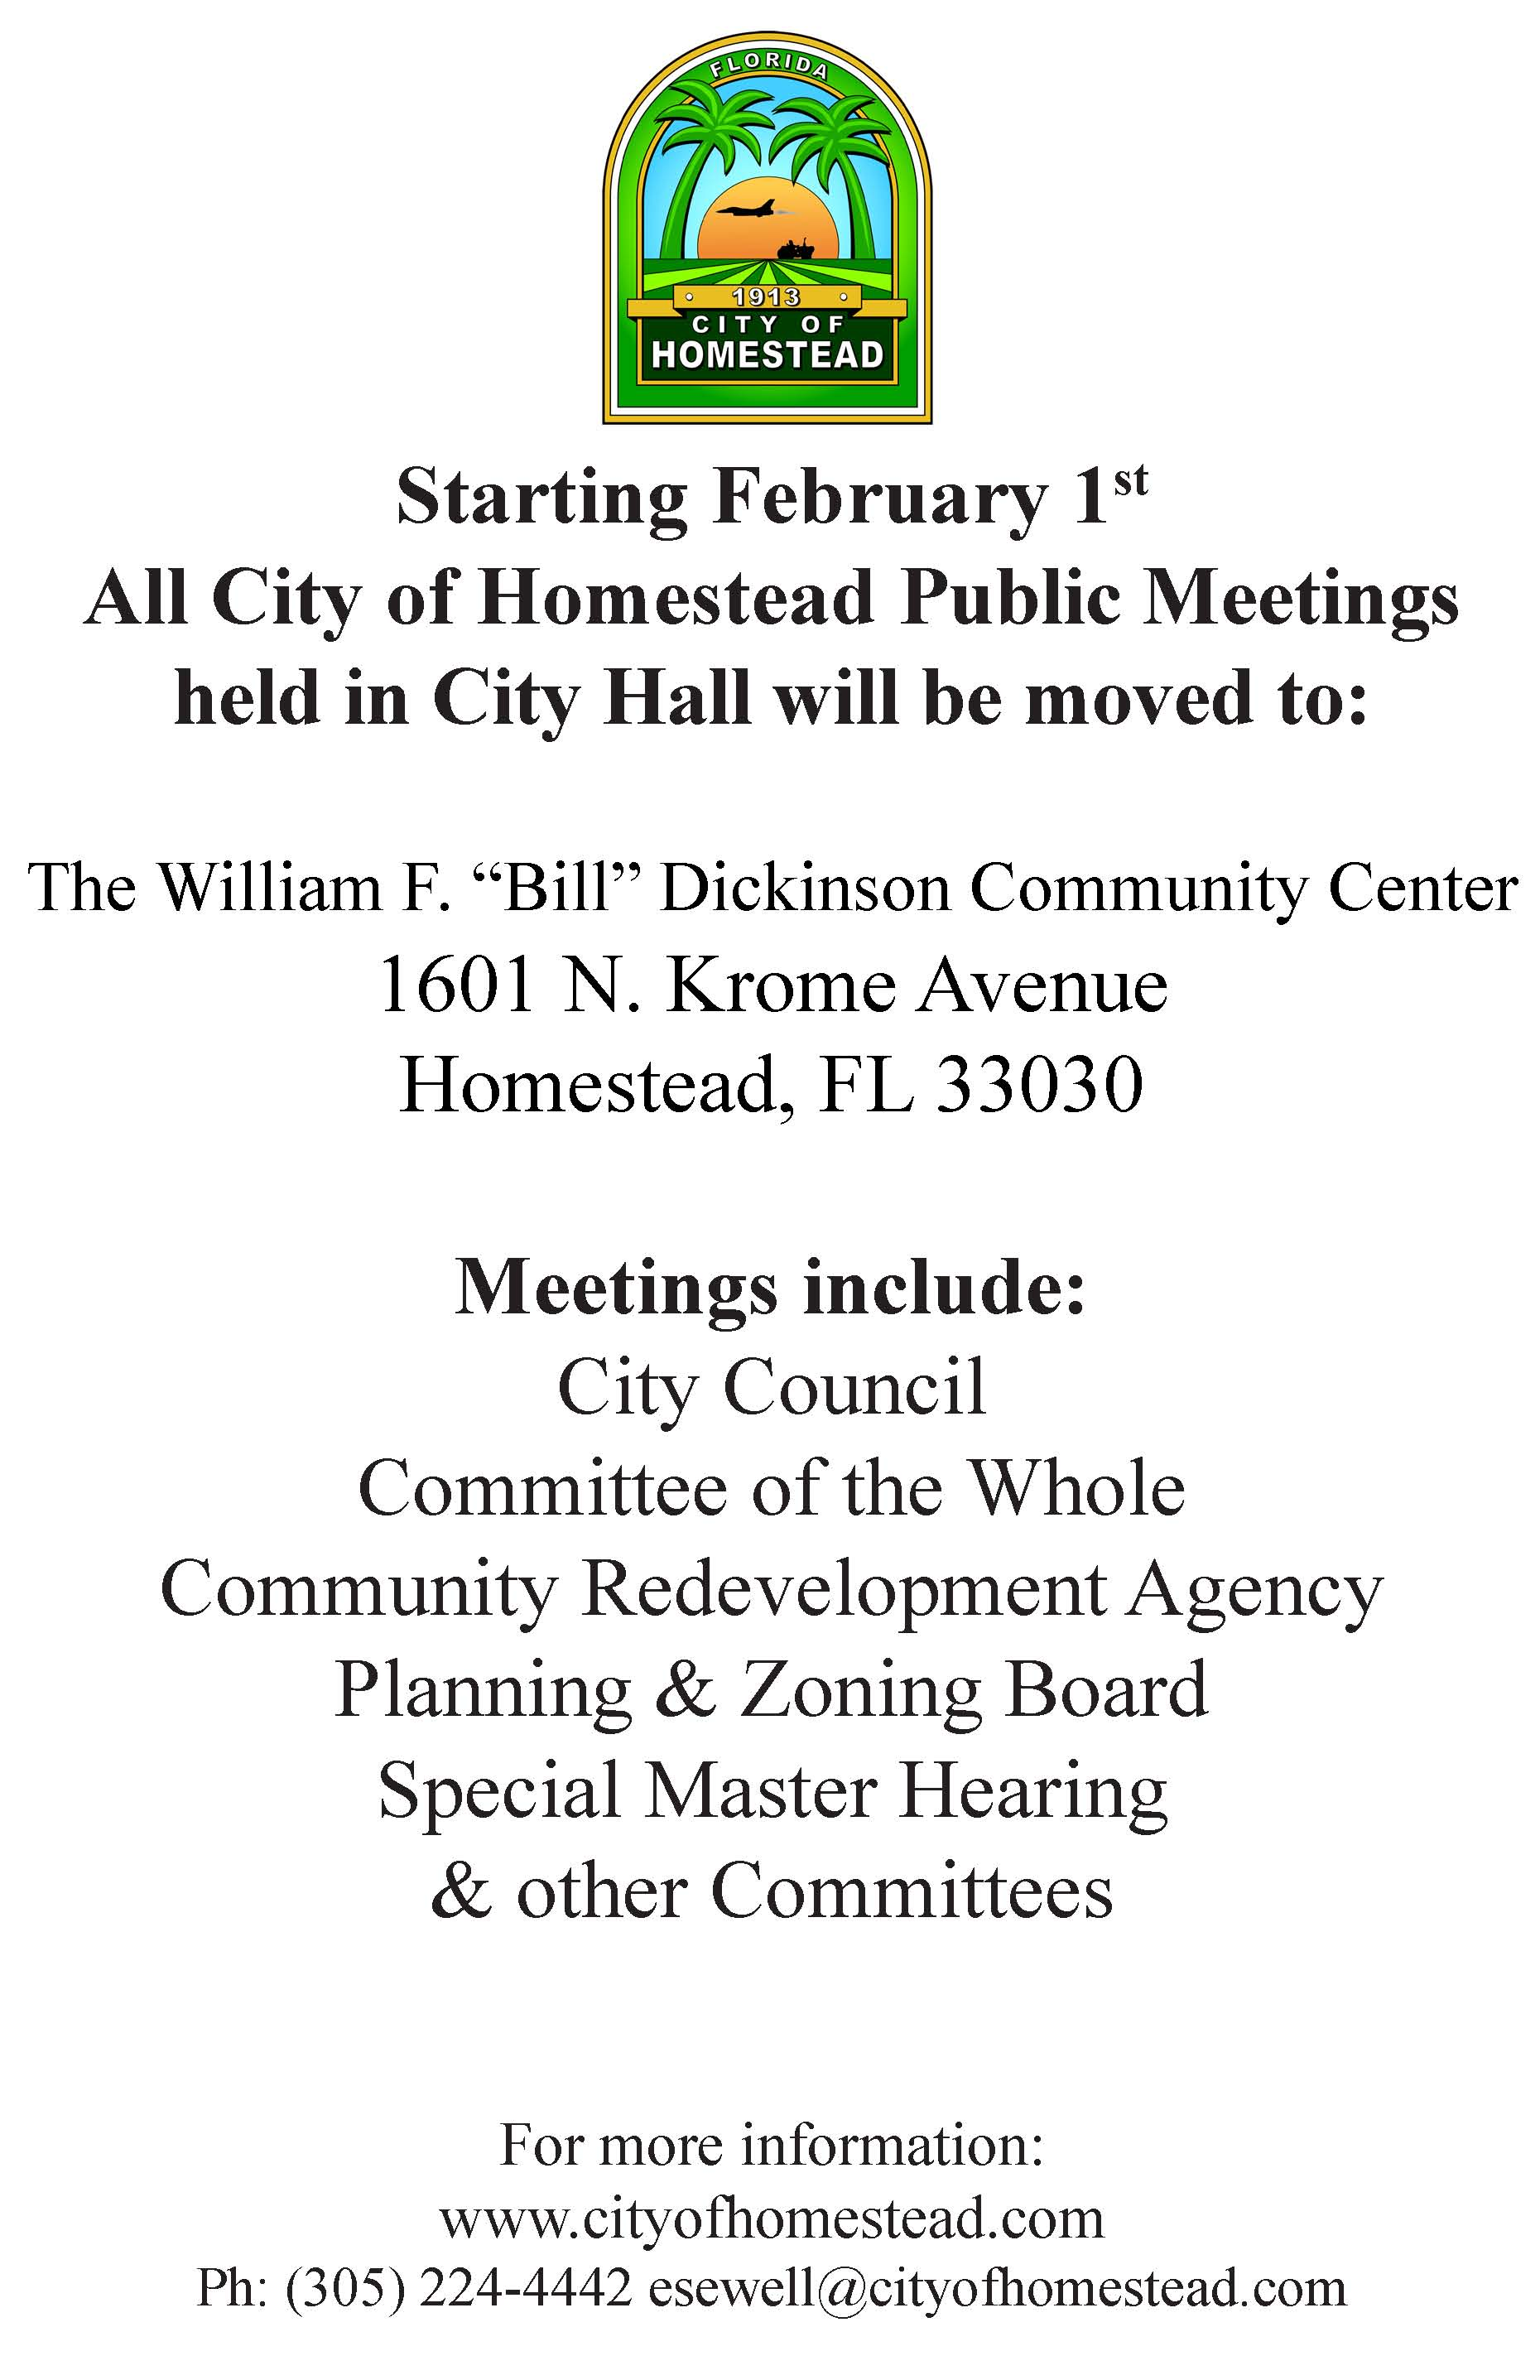 Council Meeting Move